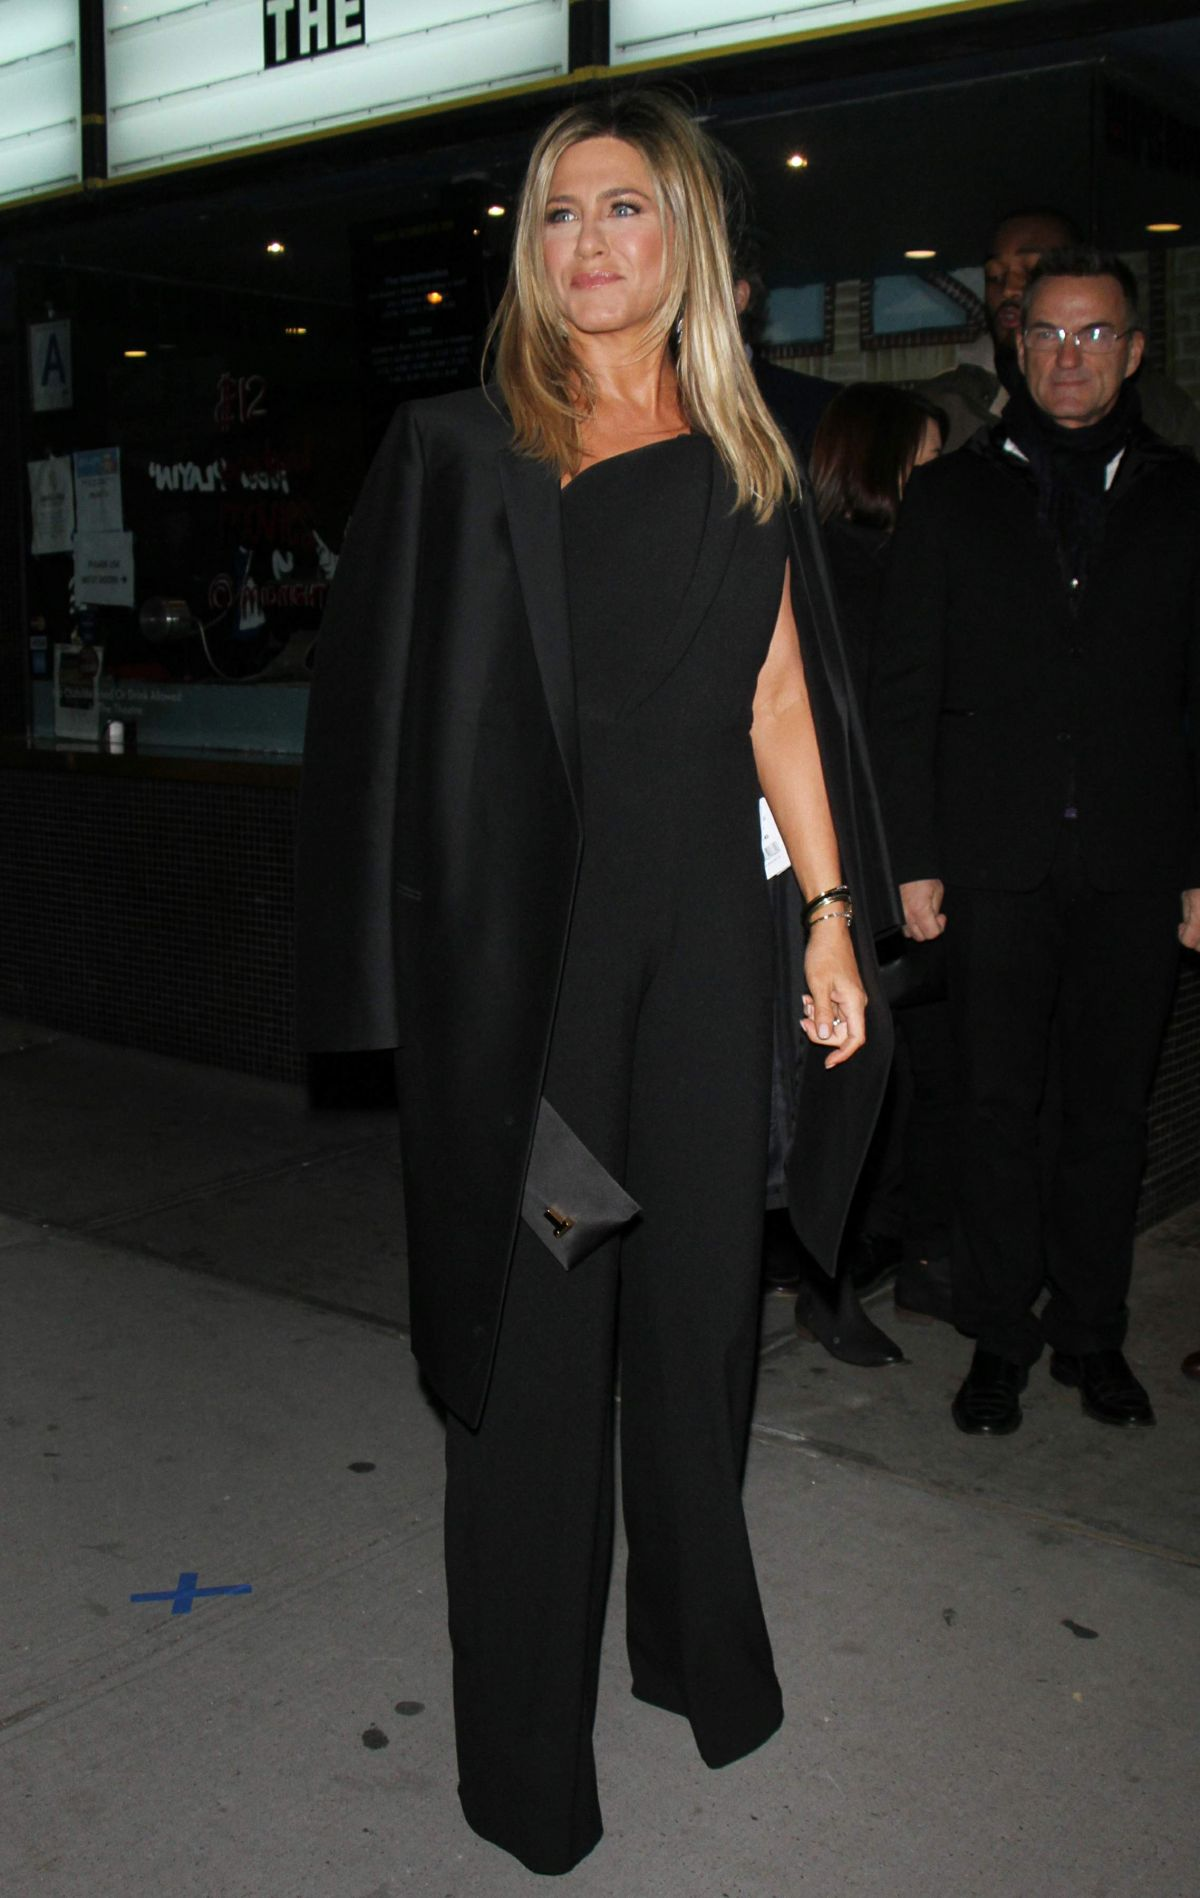 Jennifer Aniston Seen at 'Office Christmas Party' at Landmark Sunshine Cinema, NY   jennifer-aniston-seen-at-office-christmas-party-at-landmark-sunshine-cinema-ny_14